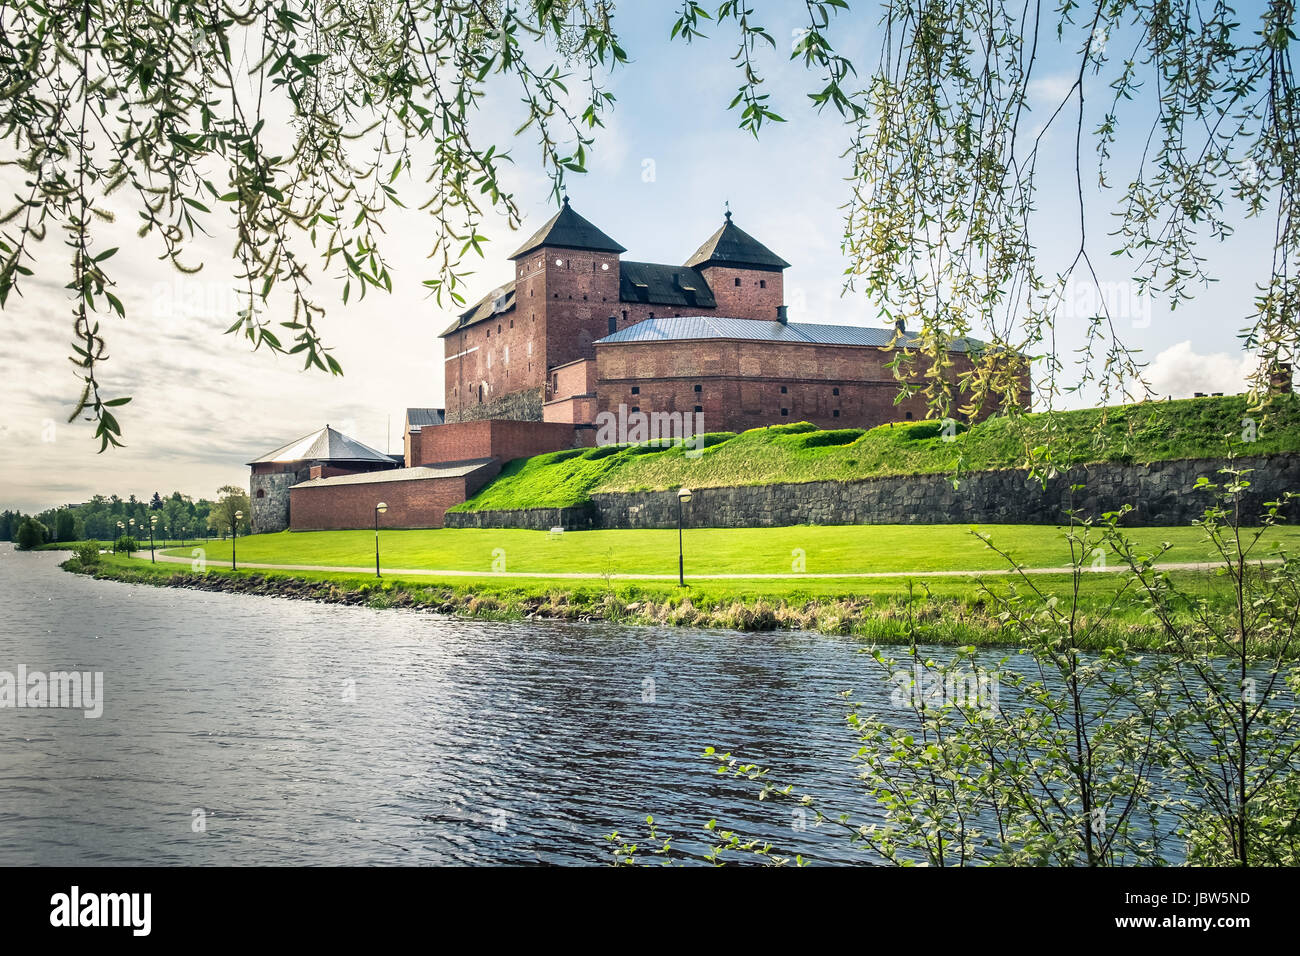 Medieval castle in the city of Hameenlinna, Finland at spring Stock Photo